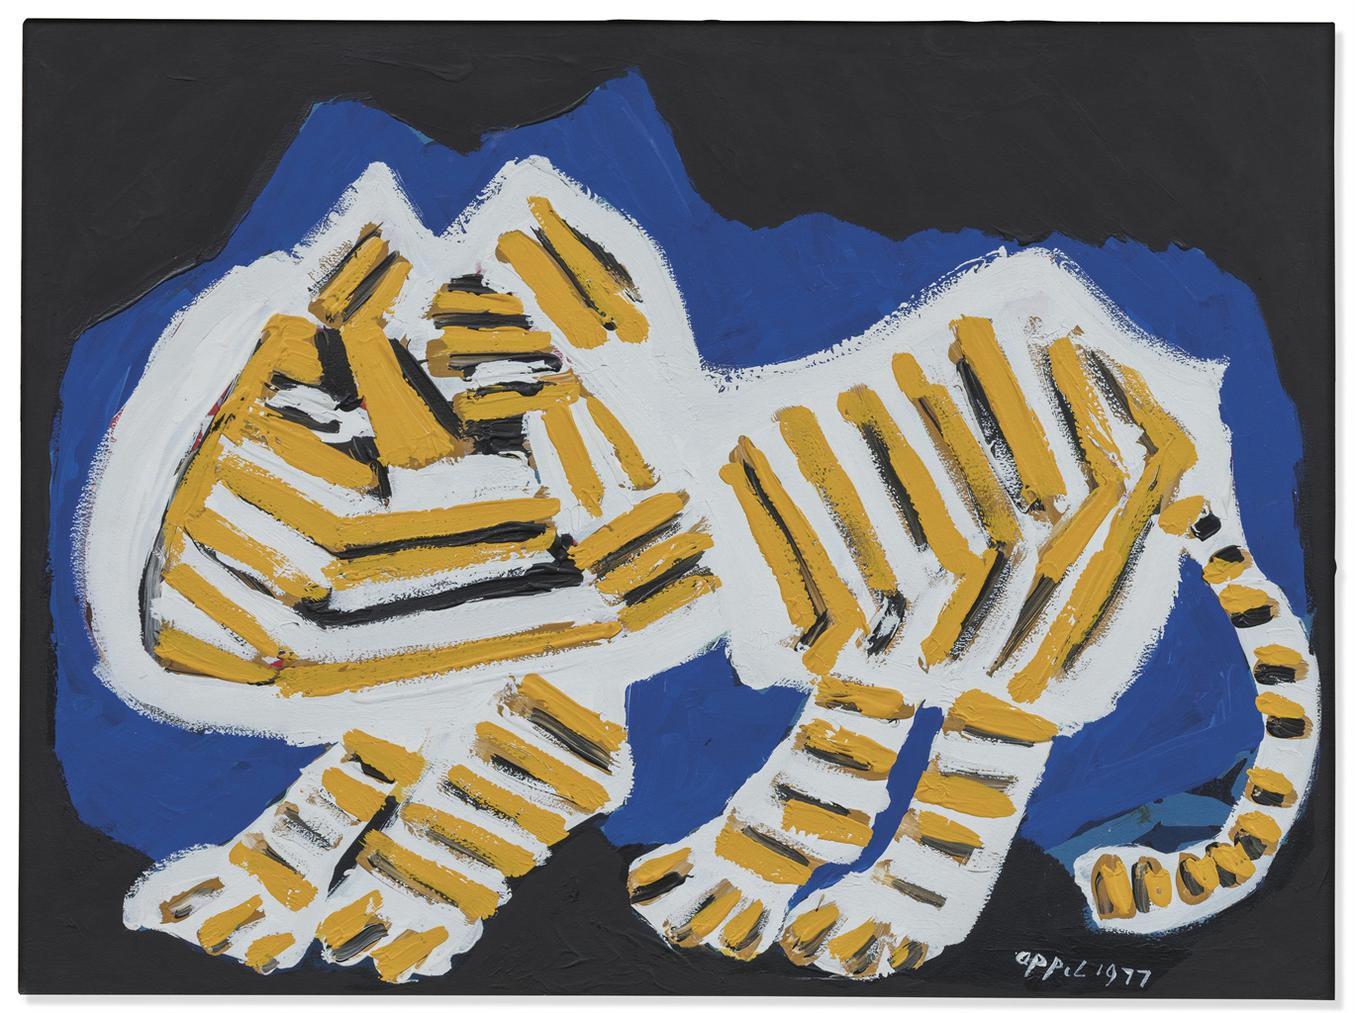 Karel Appel-Cat-1977